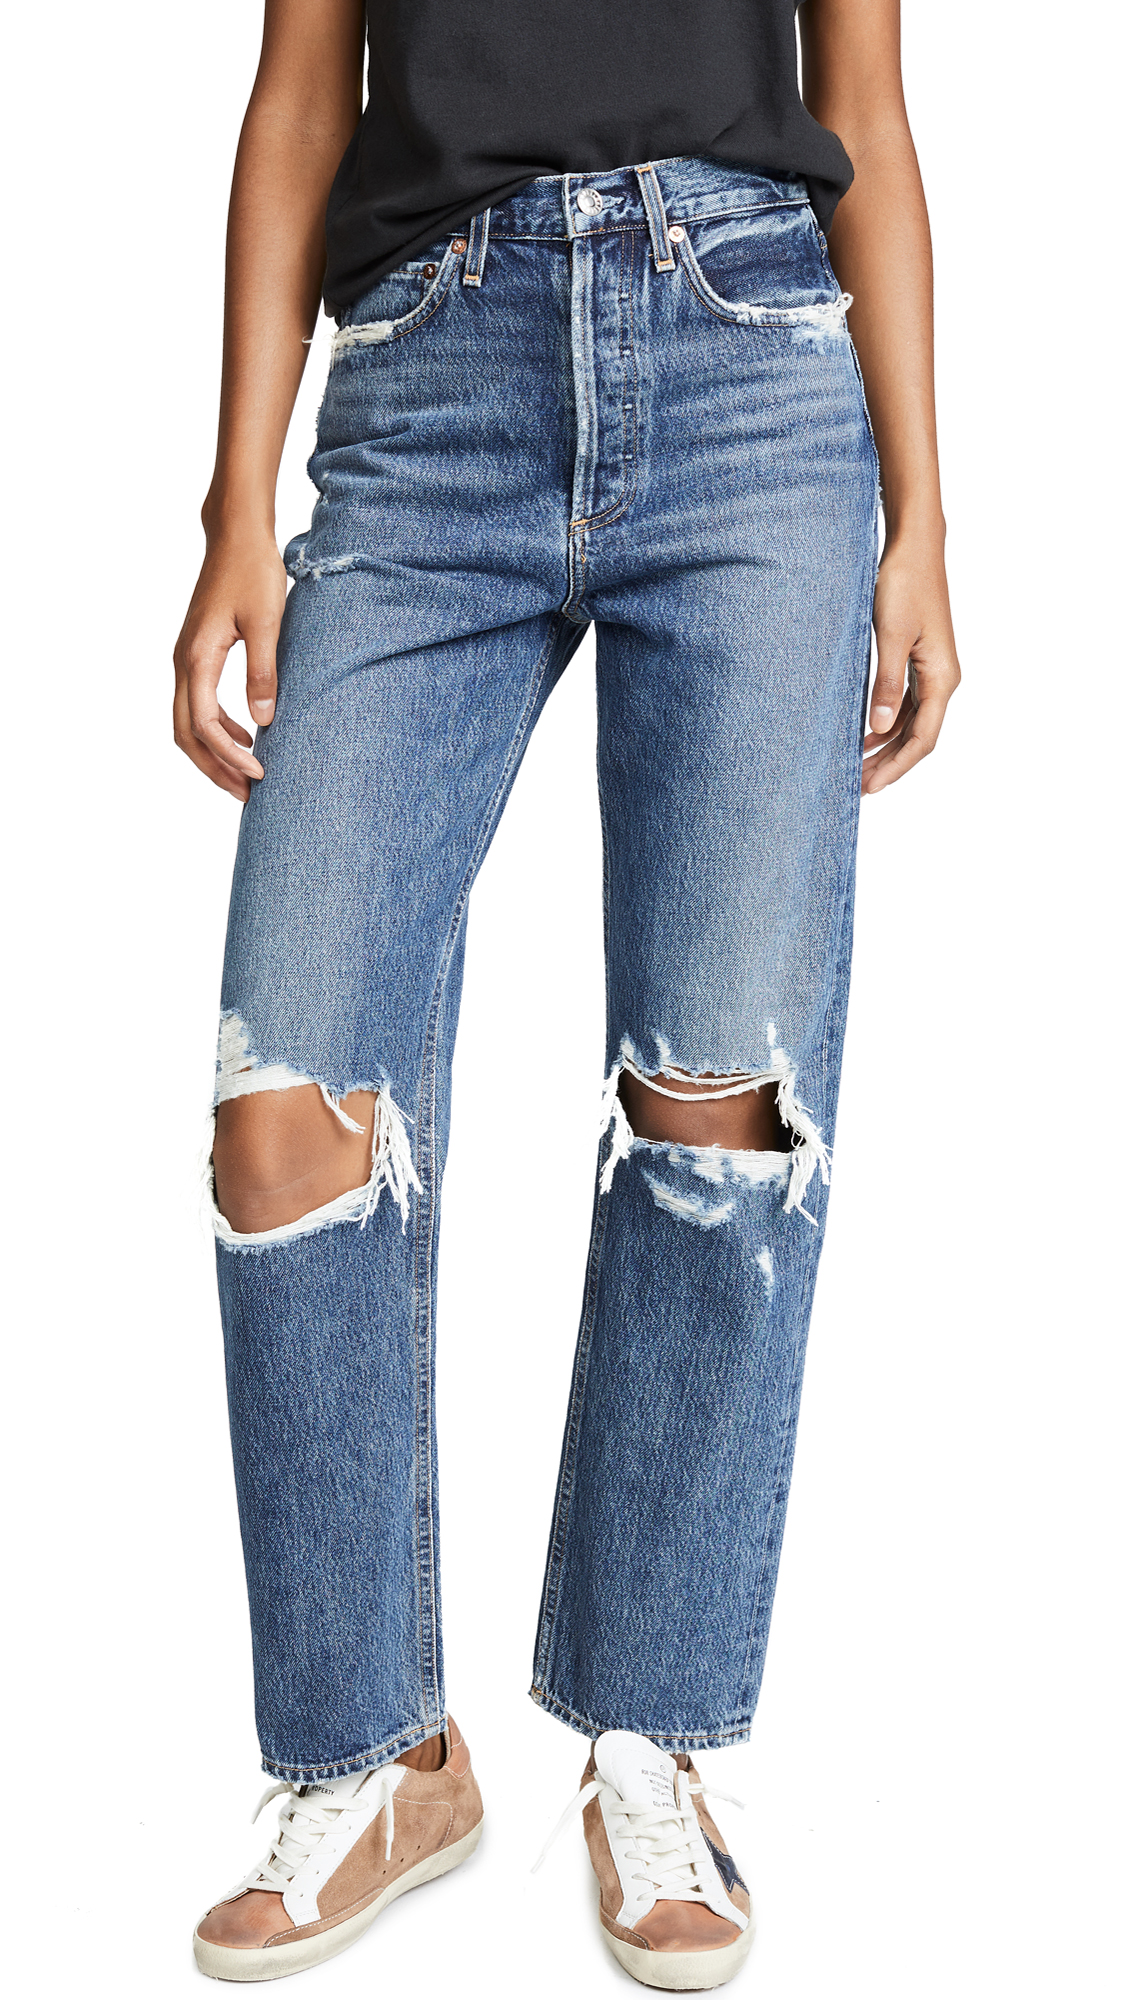 AGOLDE '90s Jeans In Psyche